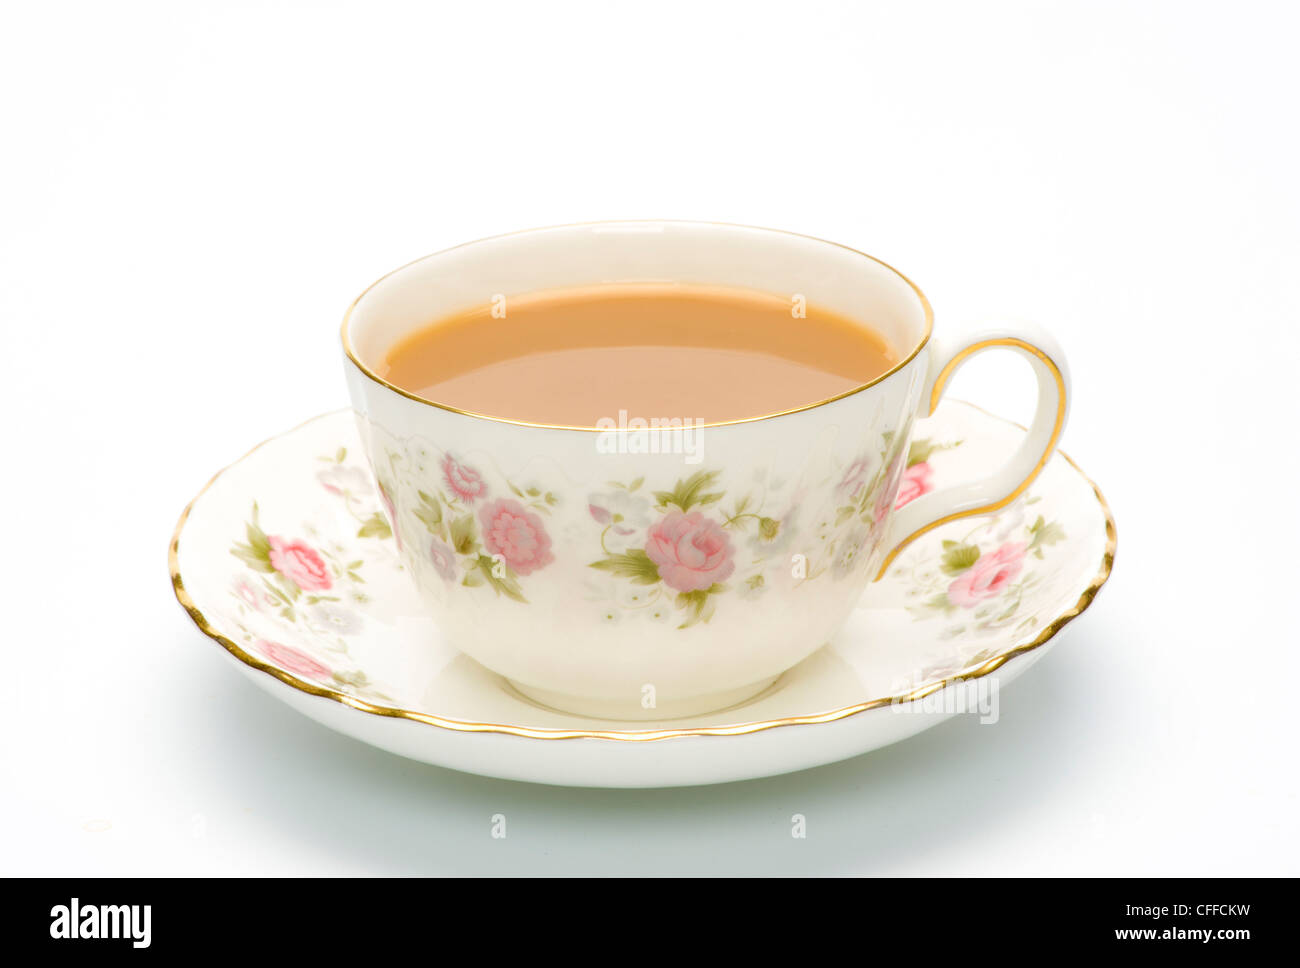 China cup and saucer with tea - Stock Image